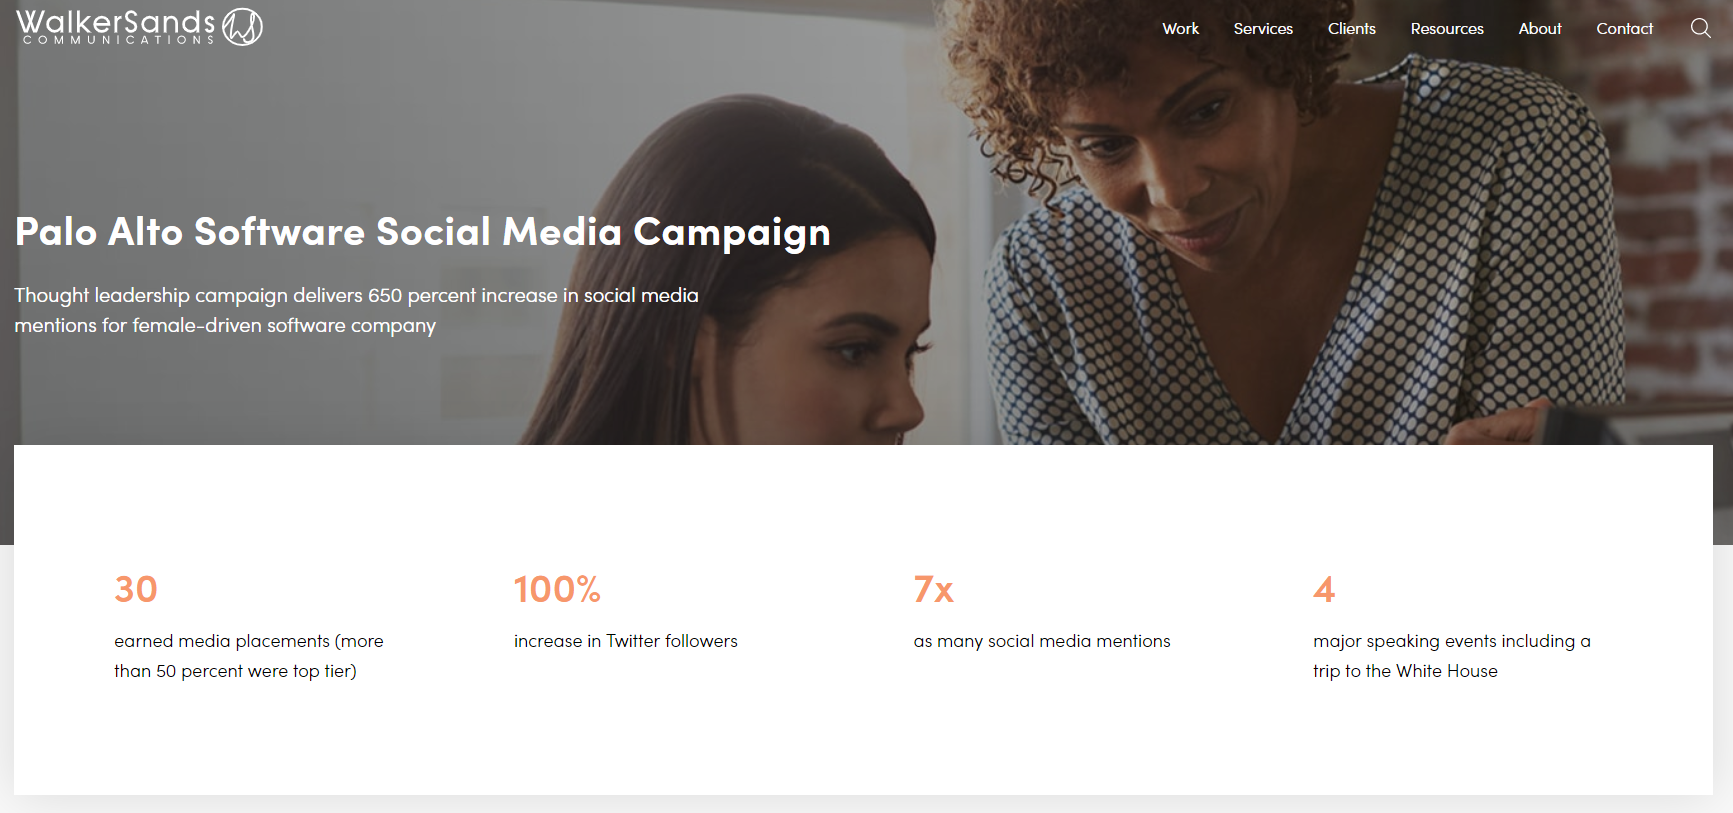 social media agencies should be able to prove their track records